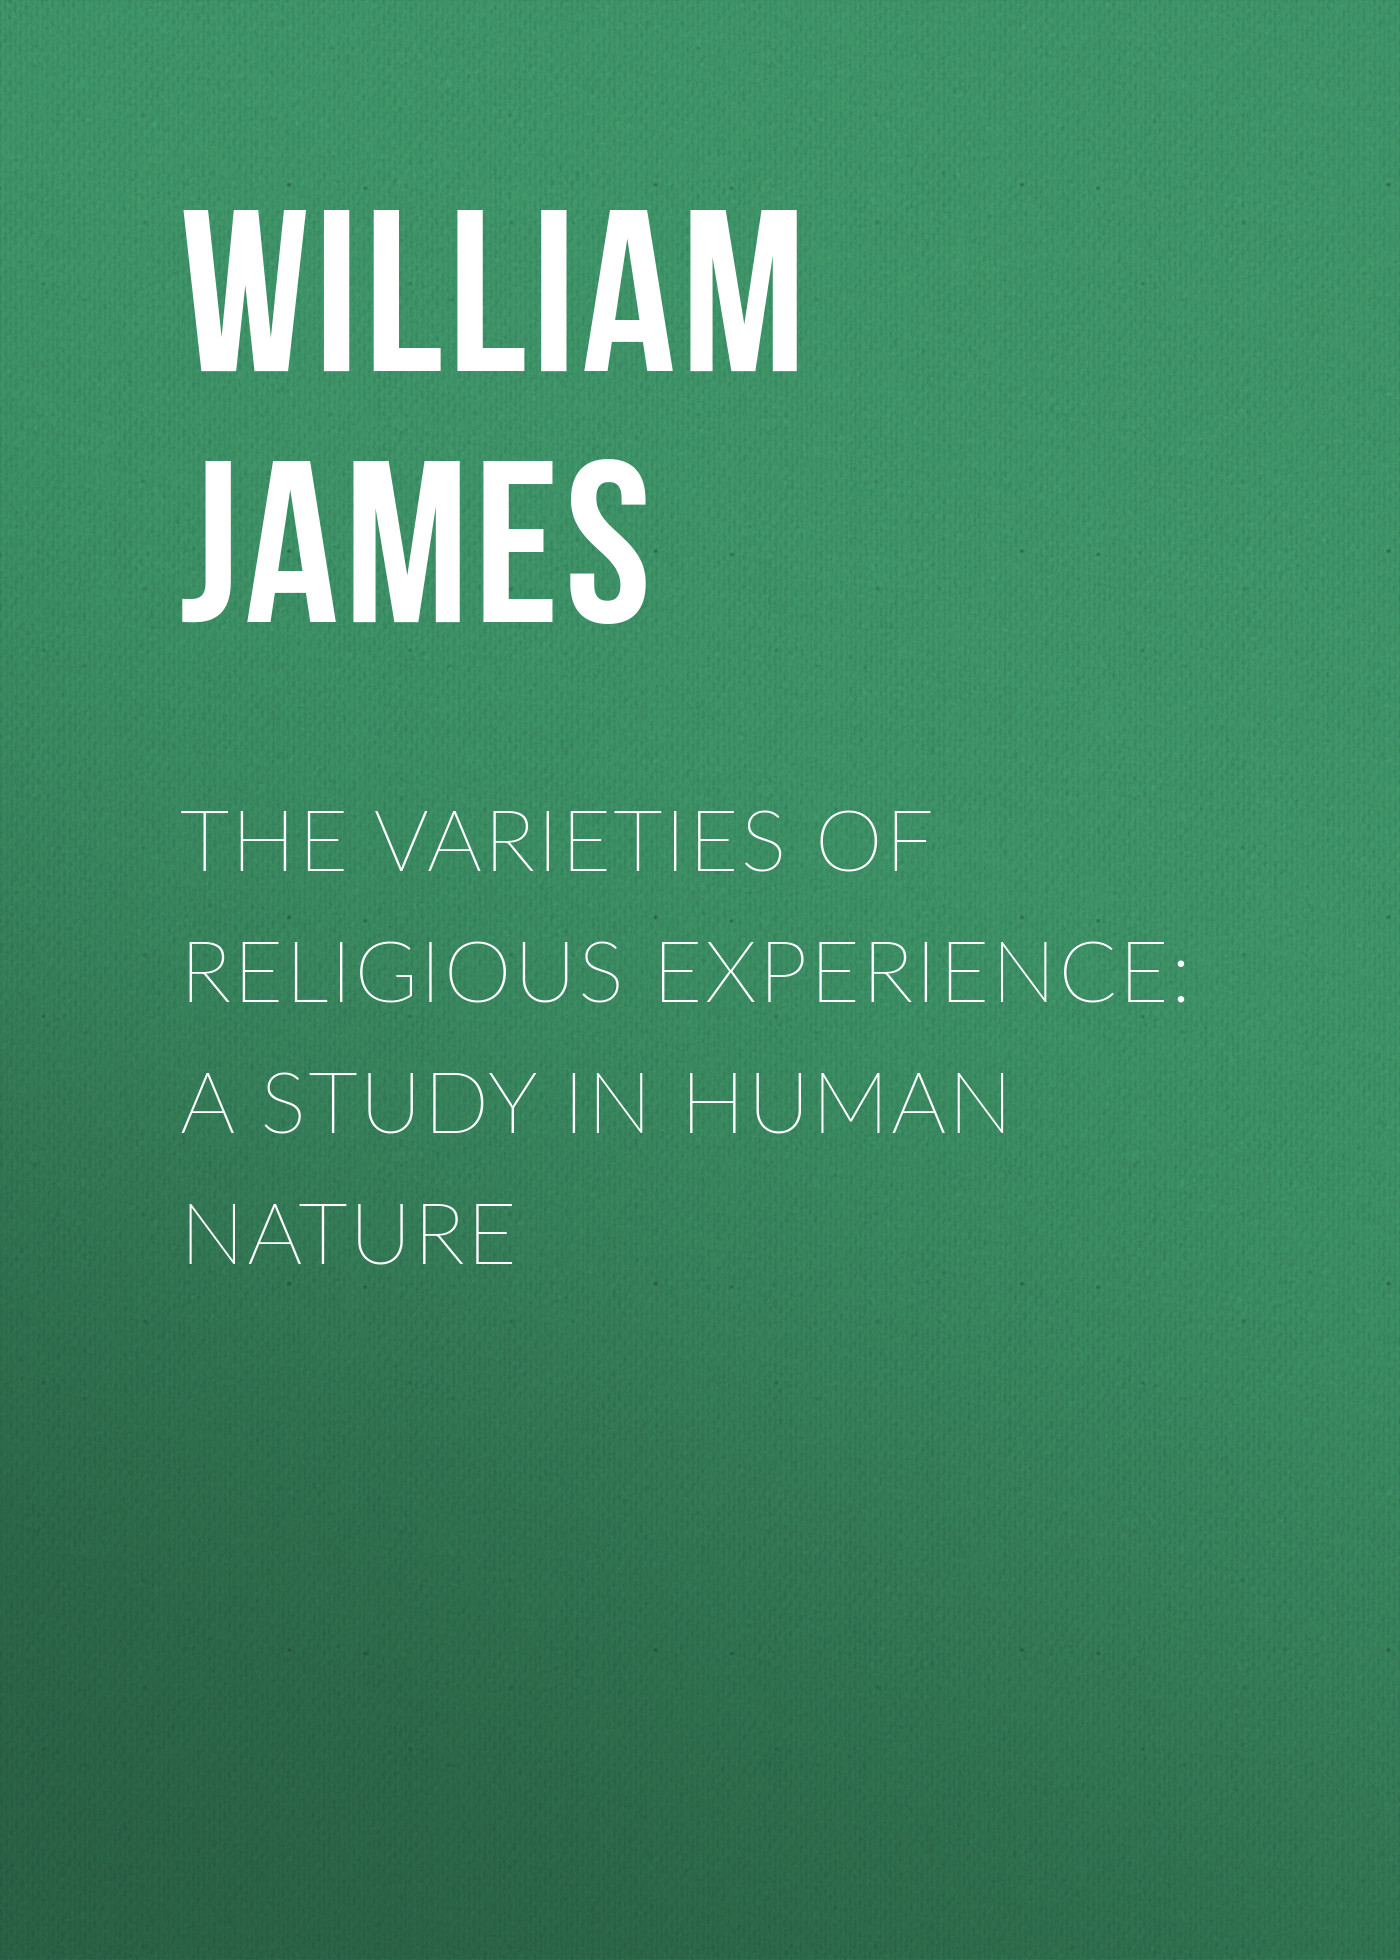 William James The Varieties of Religious Experience: A Study in Human Nature тени для век zao essence of nature zao essence of nature za005lwkjk55